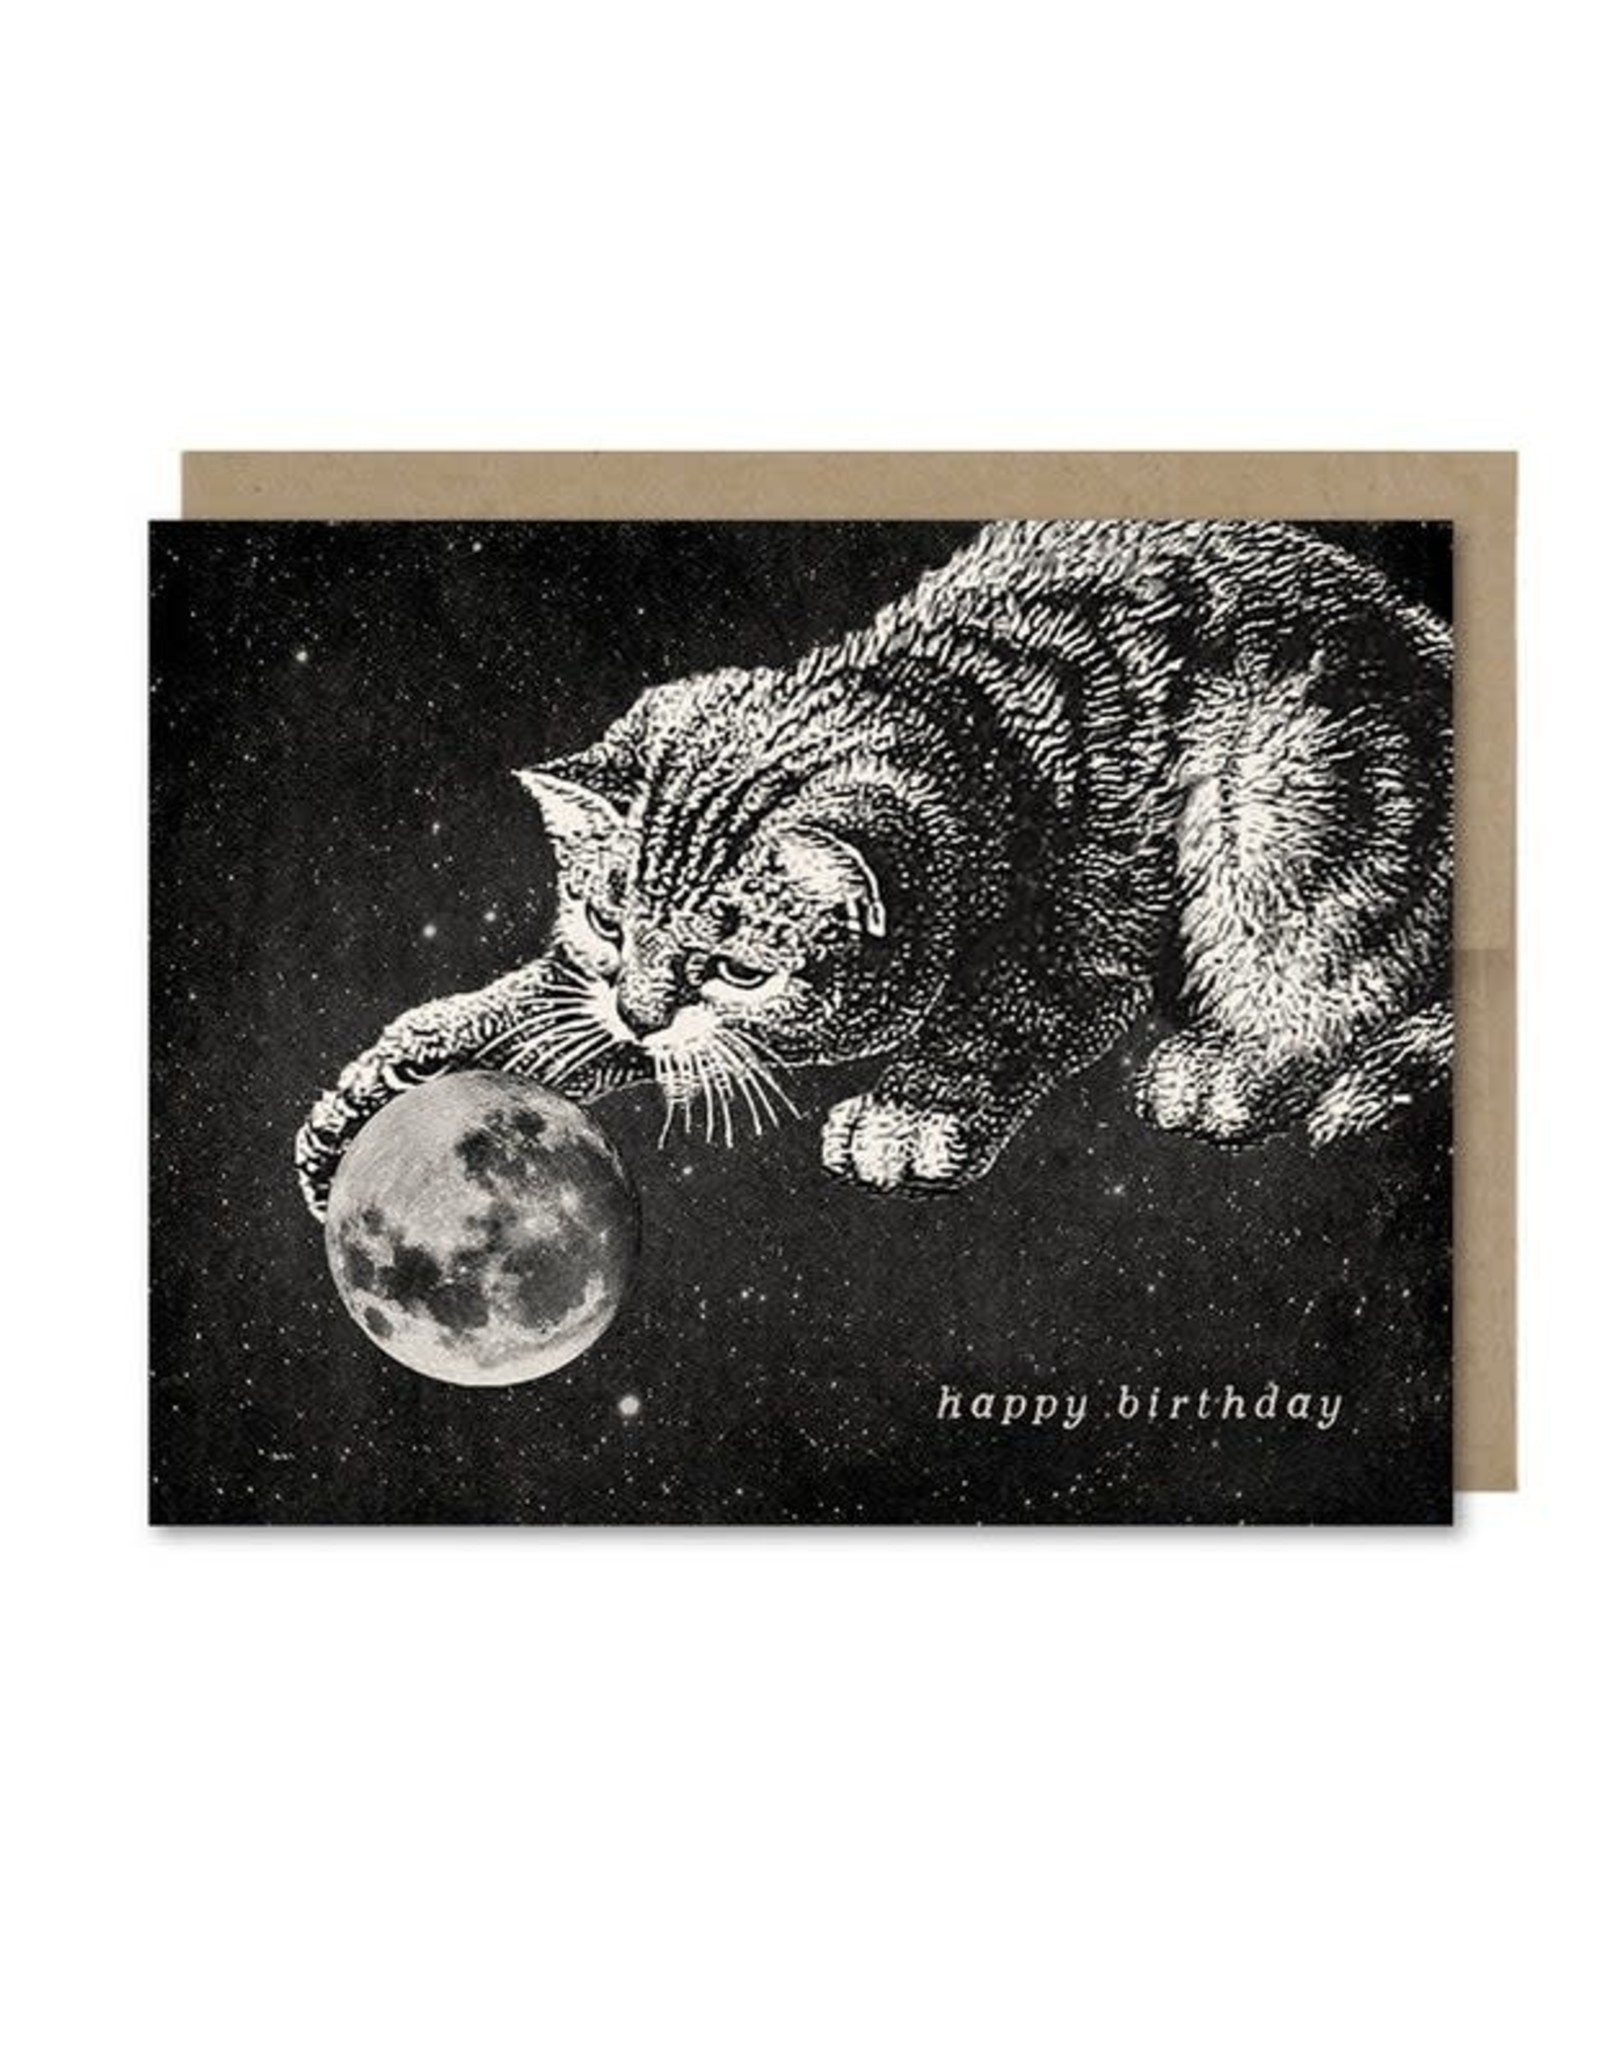 Cat with Moon Toy Birthday Greeting Card - The Galek Sea